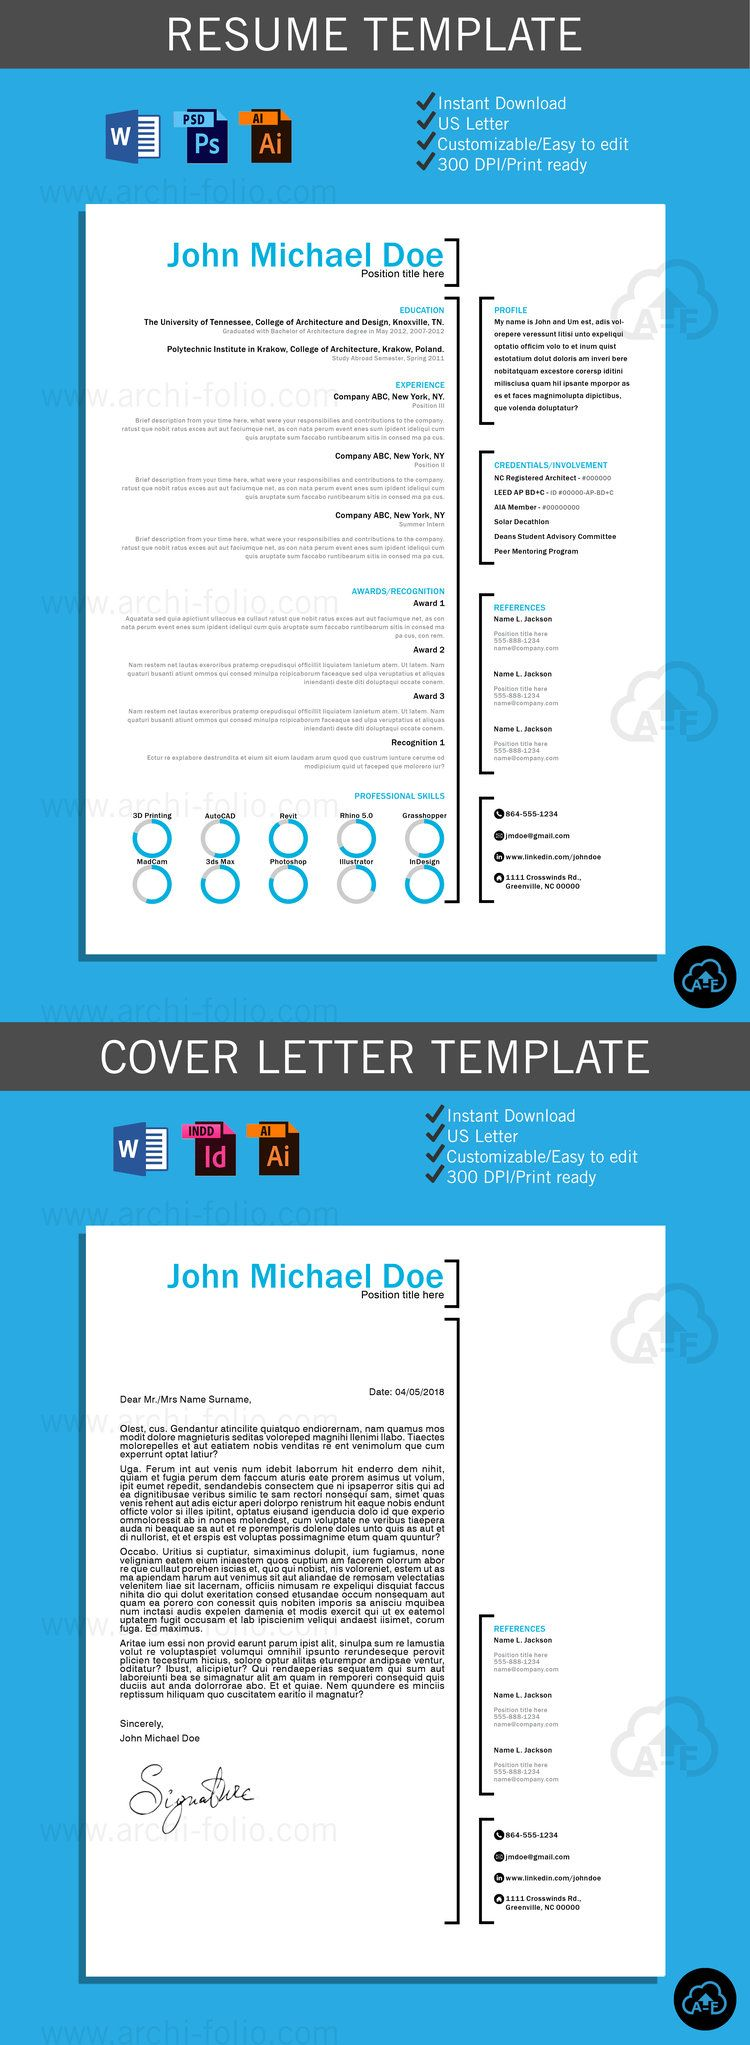 looking for someone to design and edit your resume  check out my fiverr gig   pdf  architectural